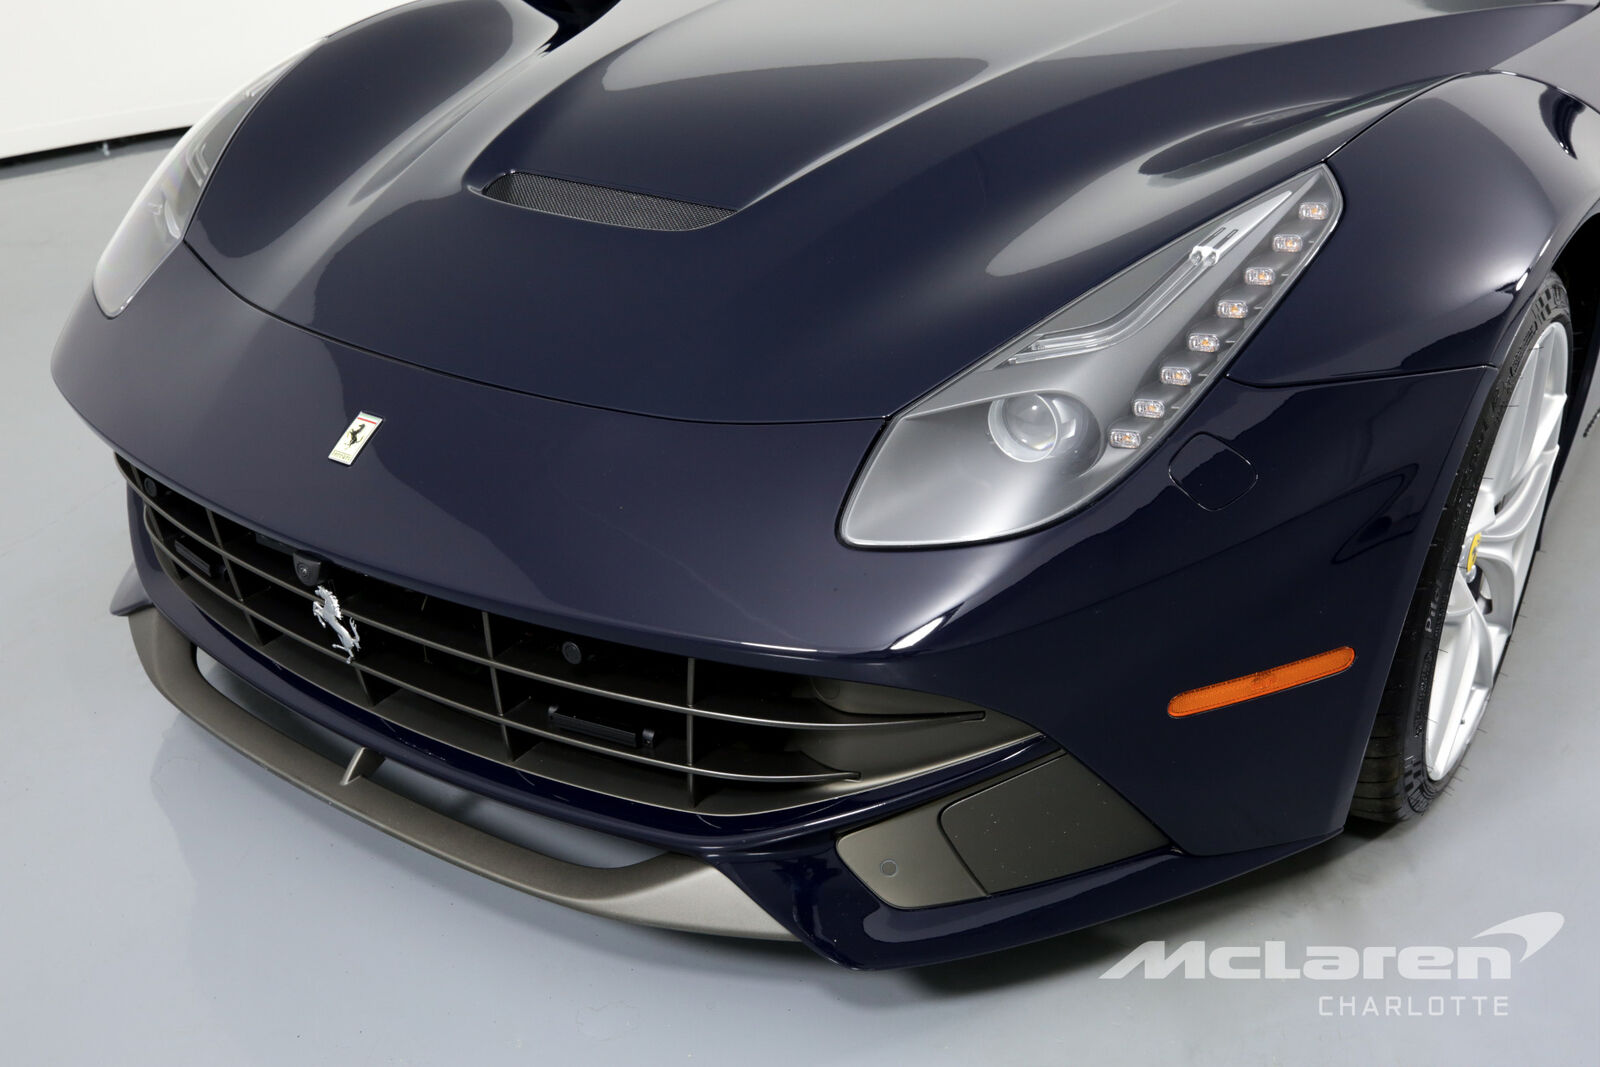 2014 Ferrari F12 Berlinetta For Sale $204,900 - 2239245